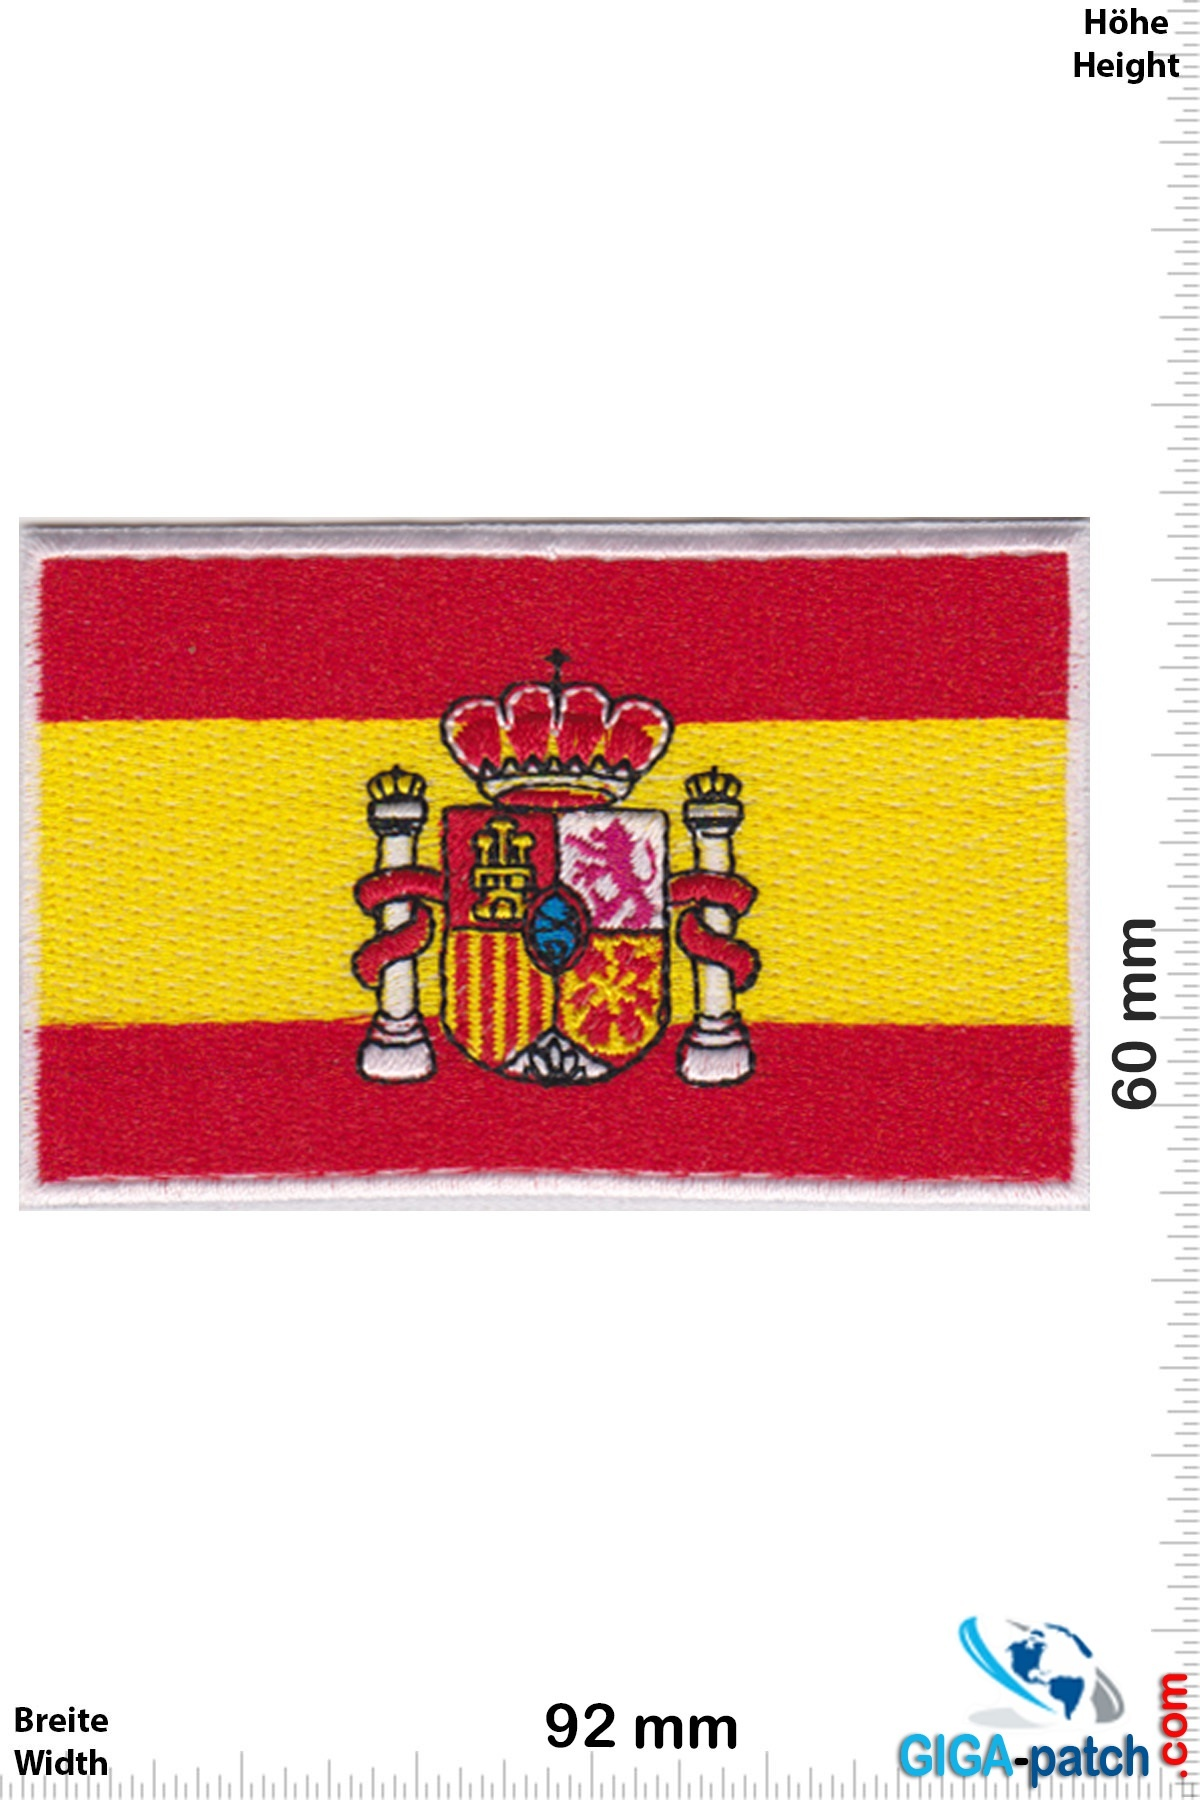 Spanien, Spain Flagge - Spanien - Flag Spain - big